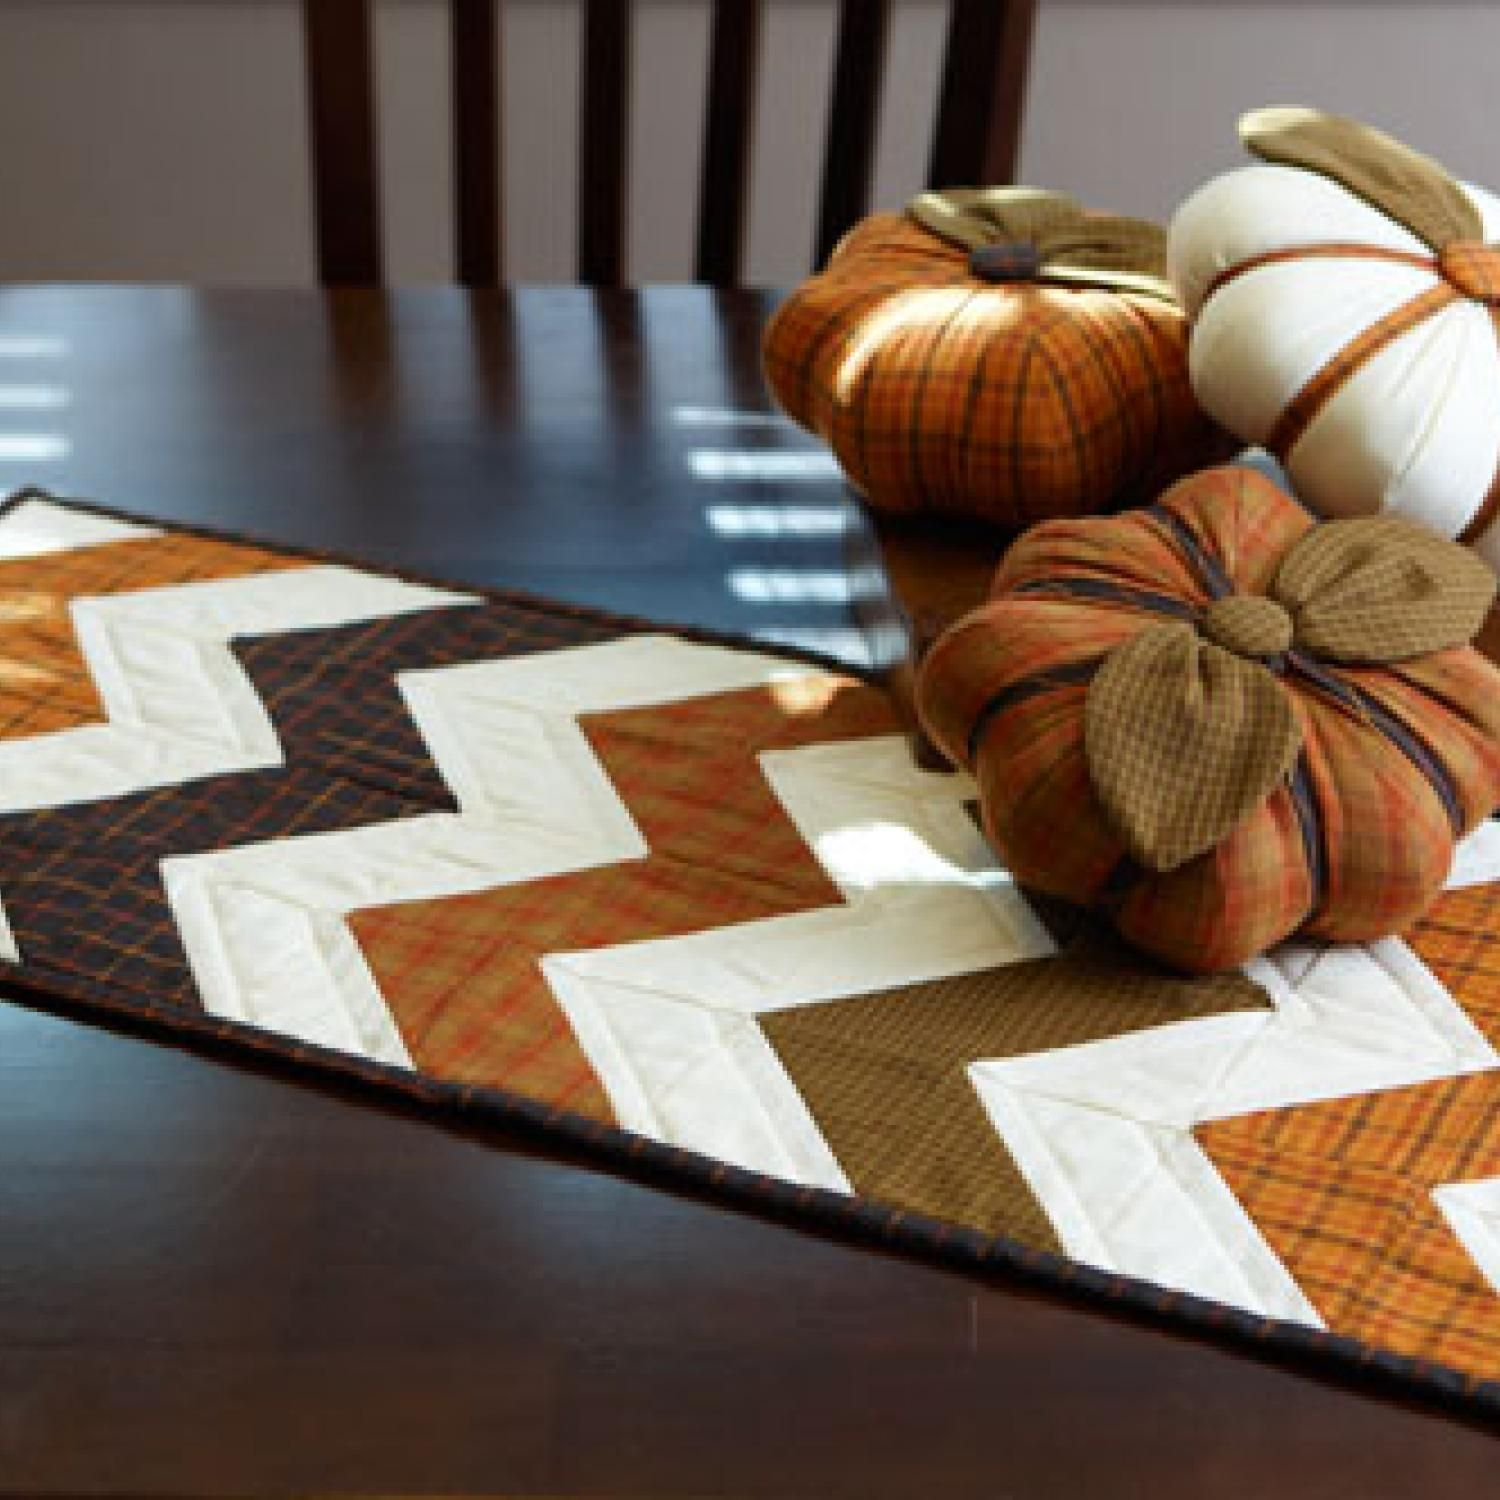 Bon Stitch A Fall Theme Table Runner And Trio Of Stuffed Pumpkins That  Designers Camille Roskelly Of Thimble Blossoms And Joanna Figueroa Of Fig  Tree U0026 Co. ...